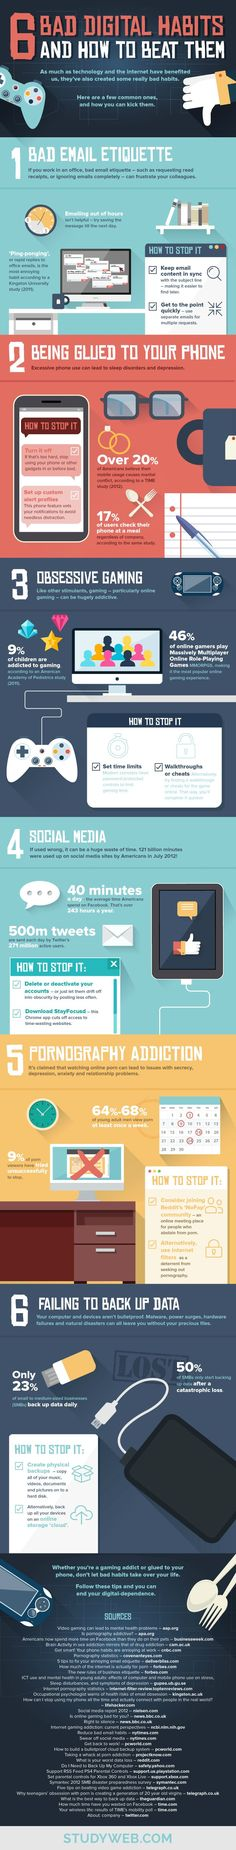 6 Bad Digital Habits (And How To Beat Them) - #infographic #email #internet